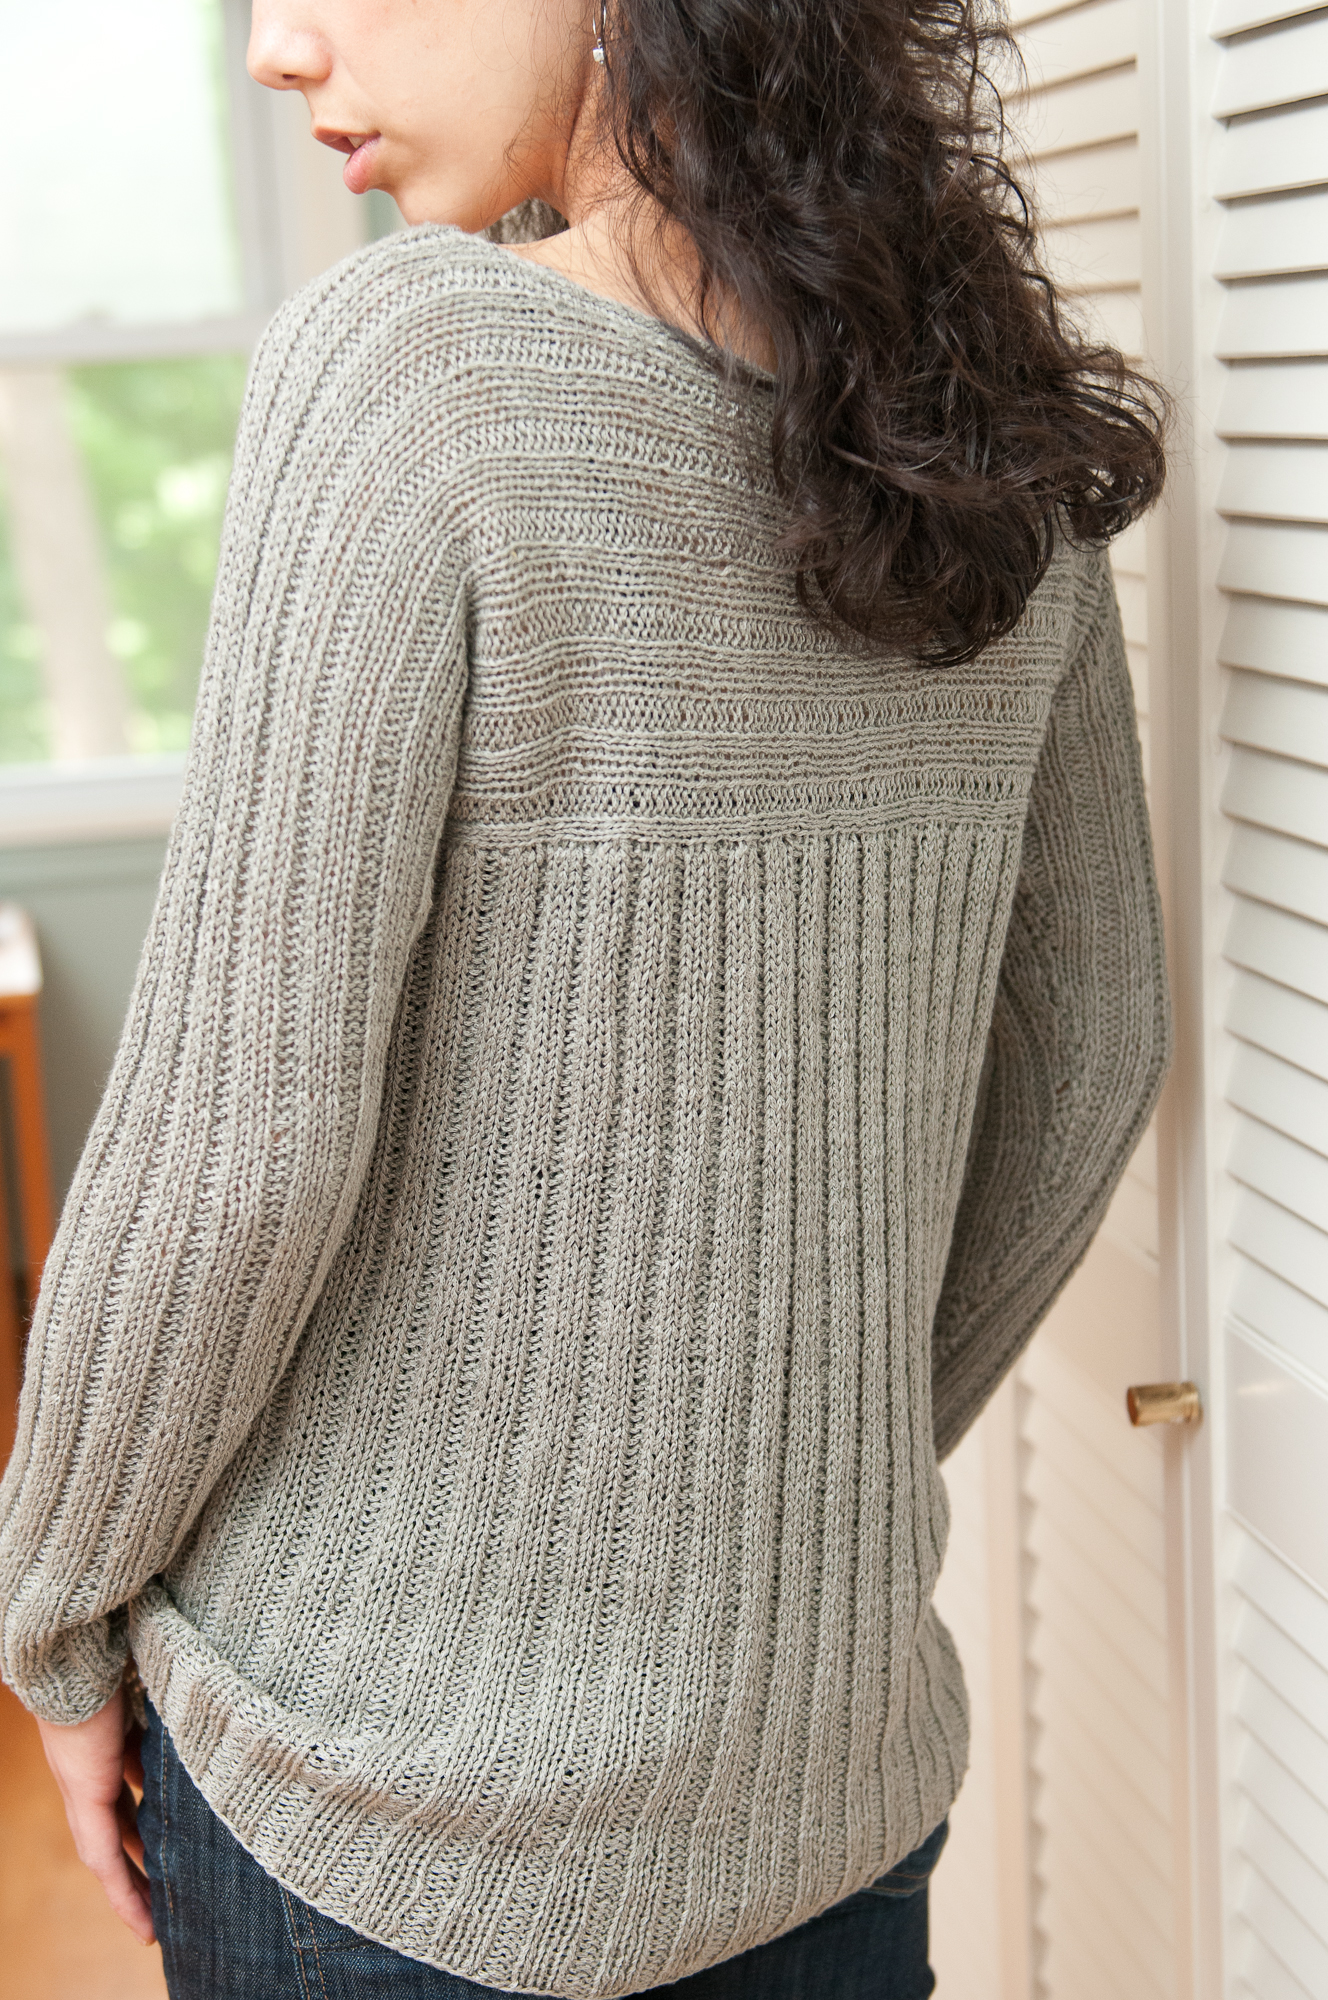 Kiko sweater pattern